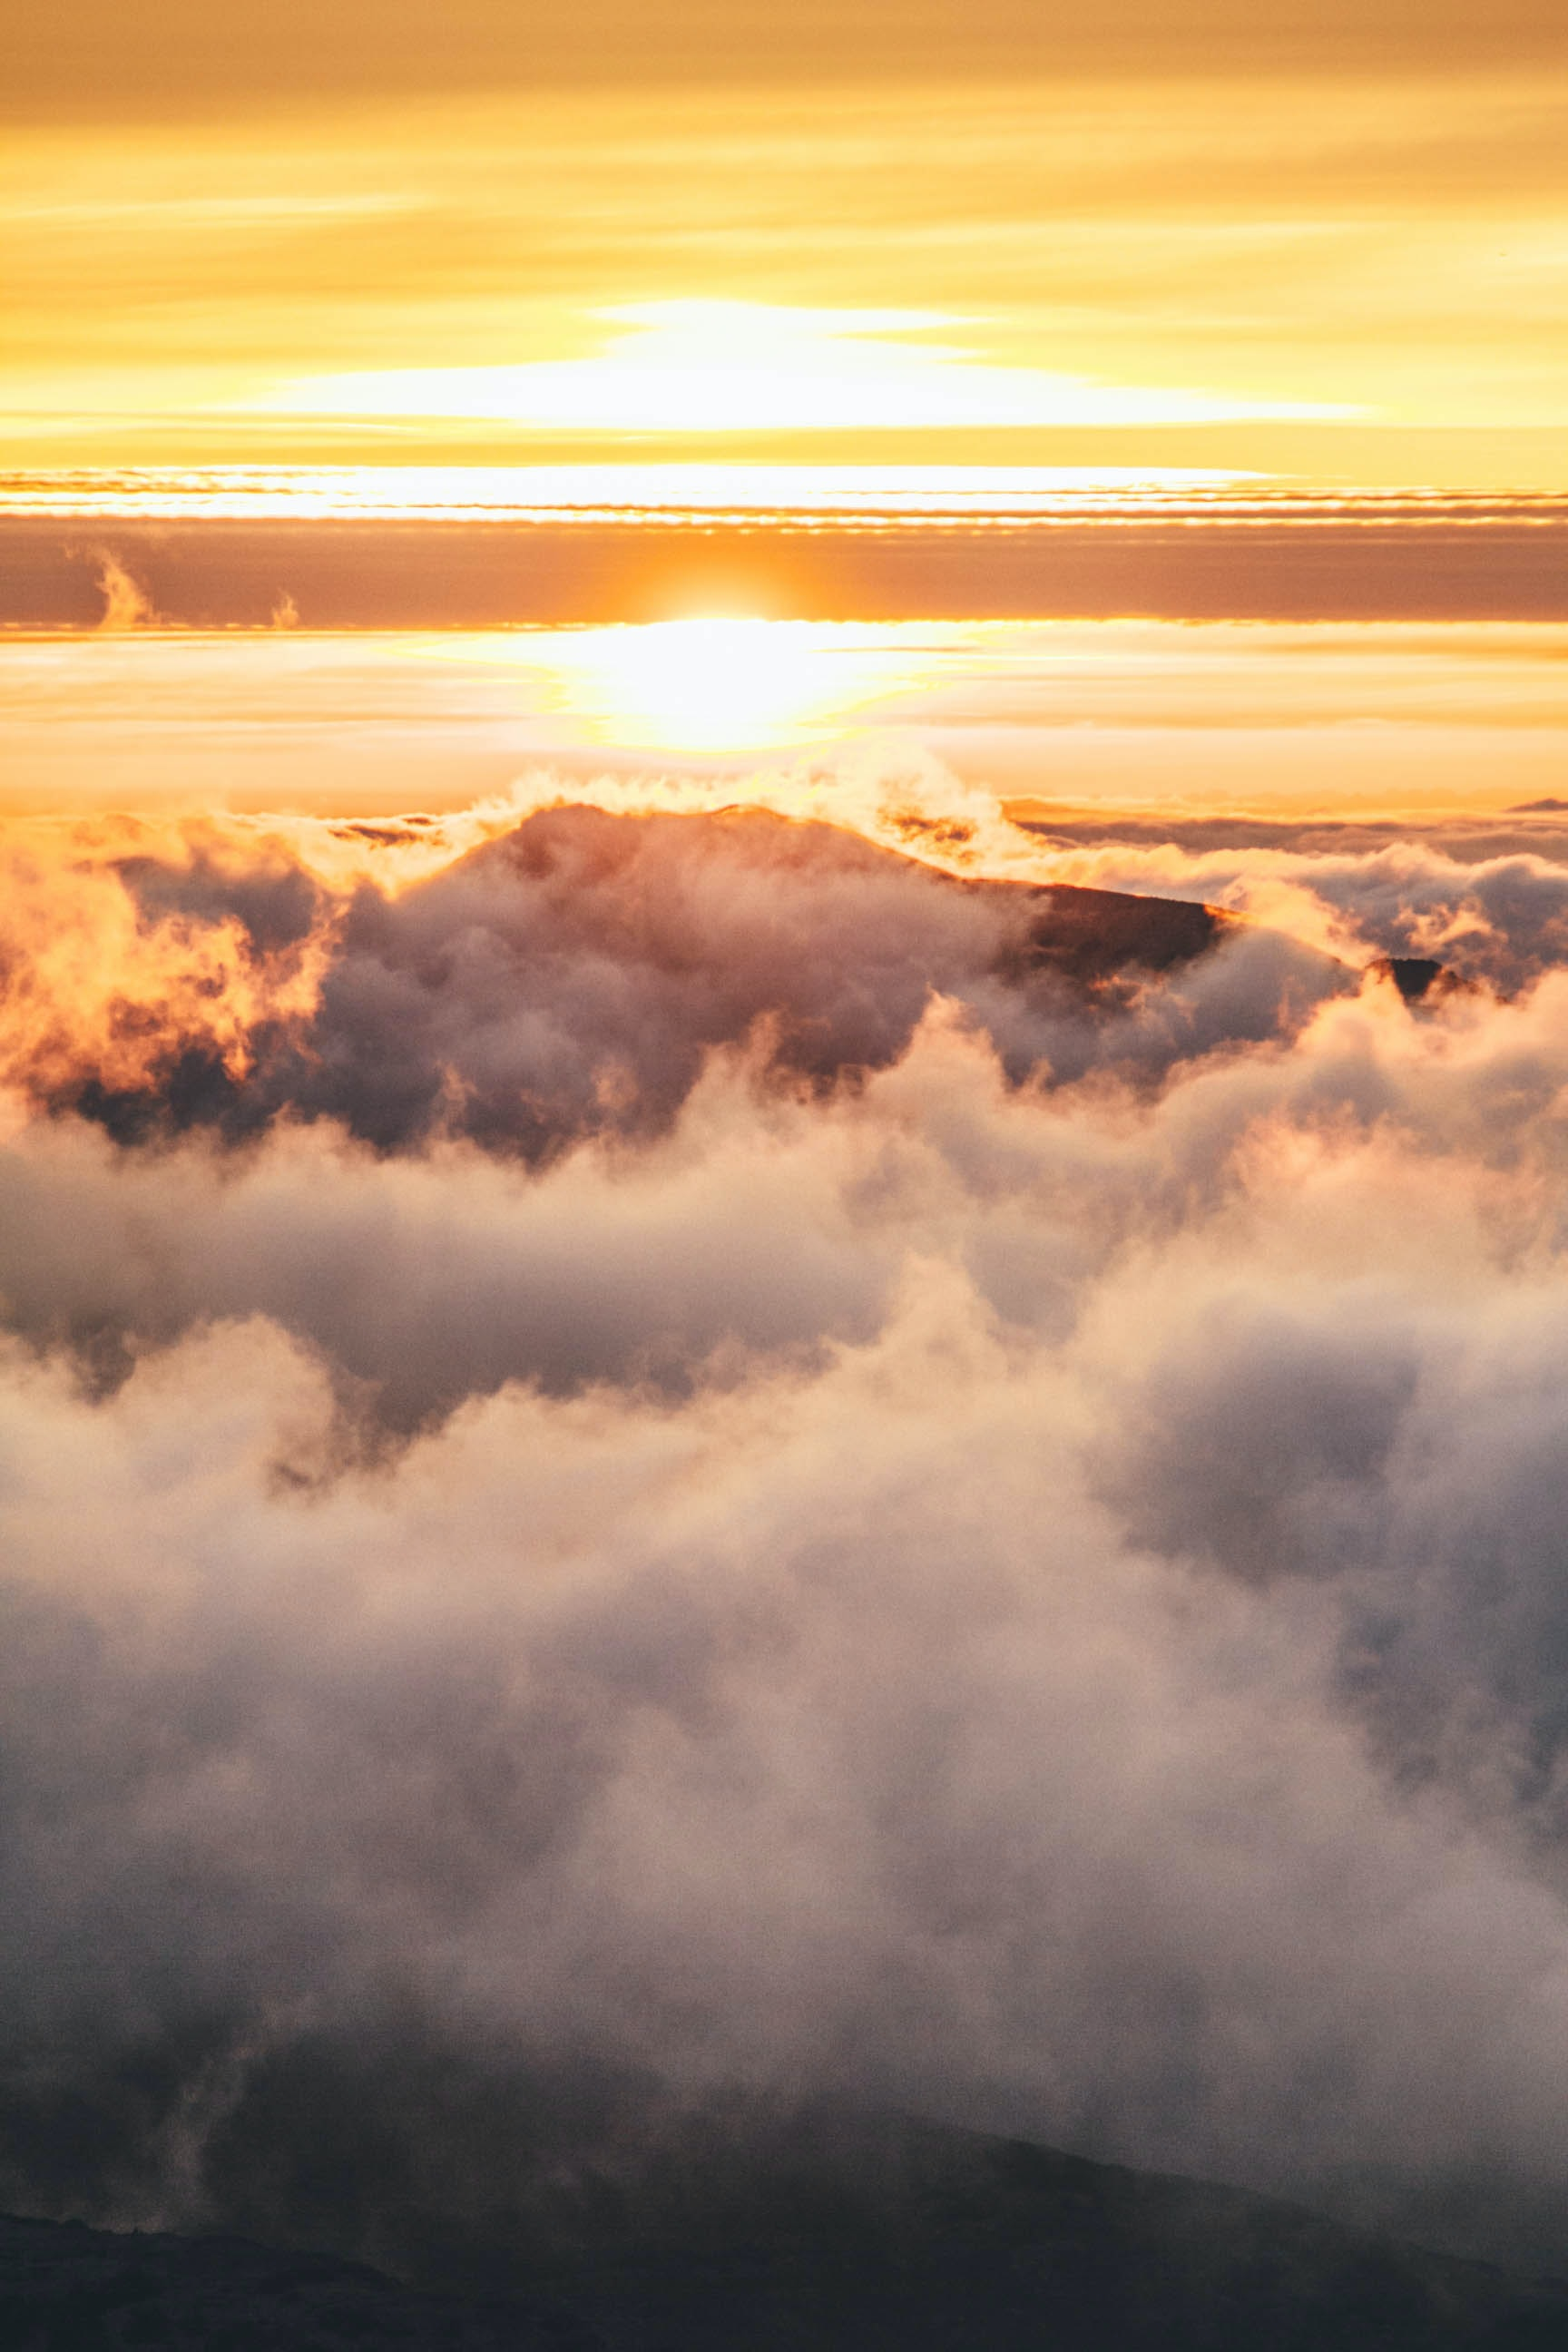 An atmospheric shot of a cloudscape from atop a mountain peak at sunset